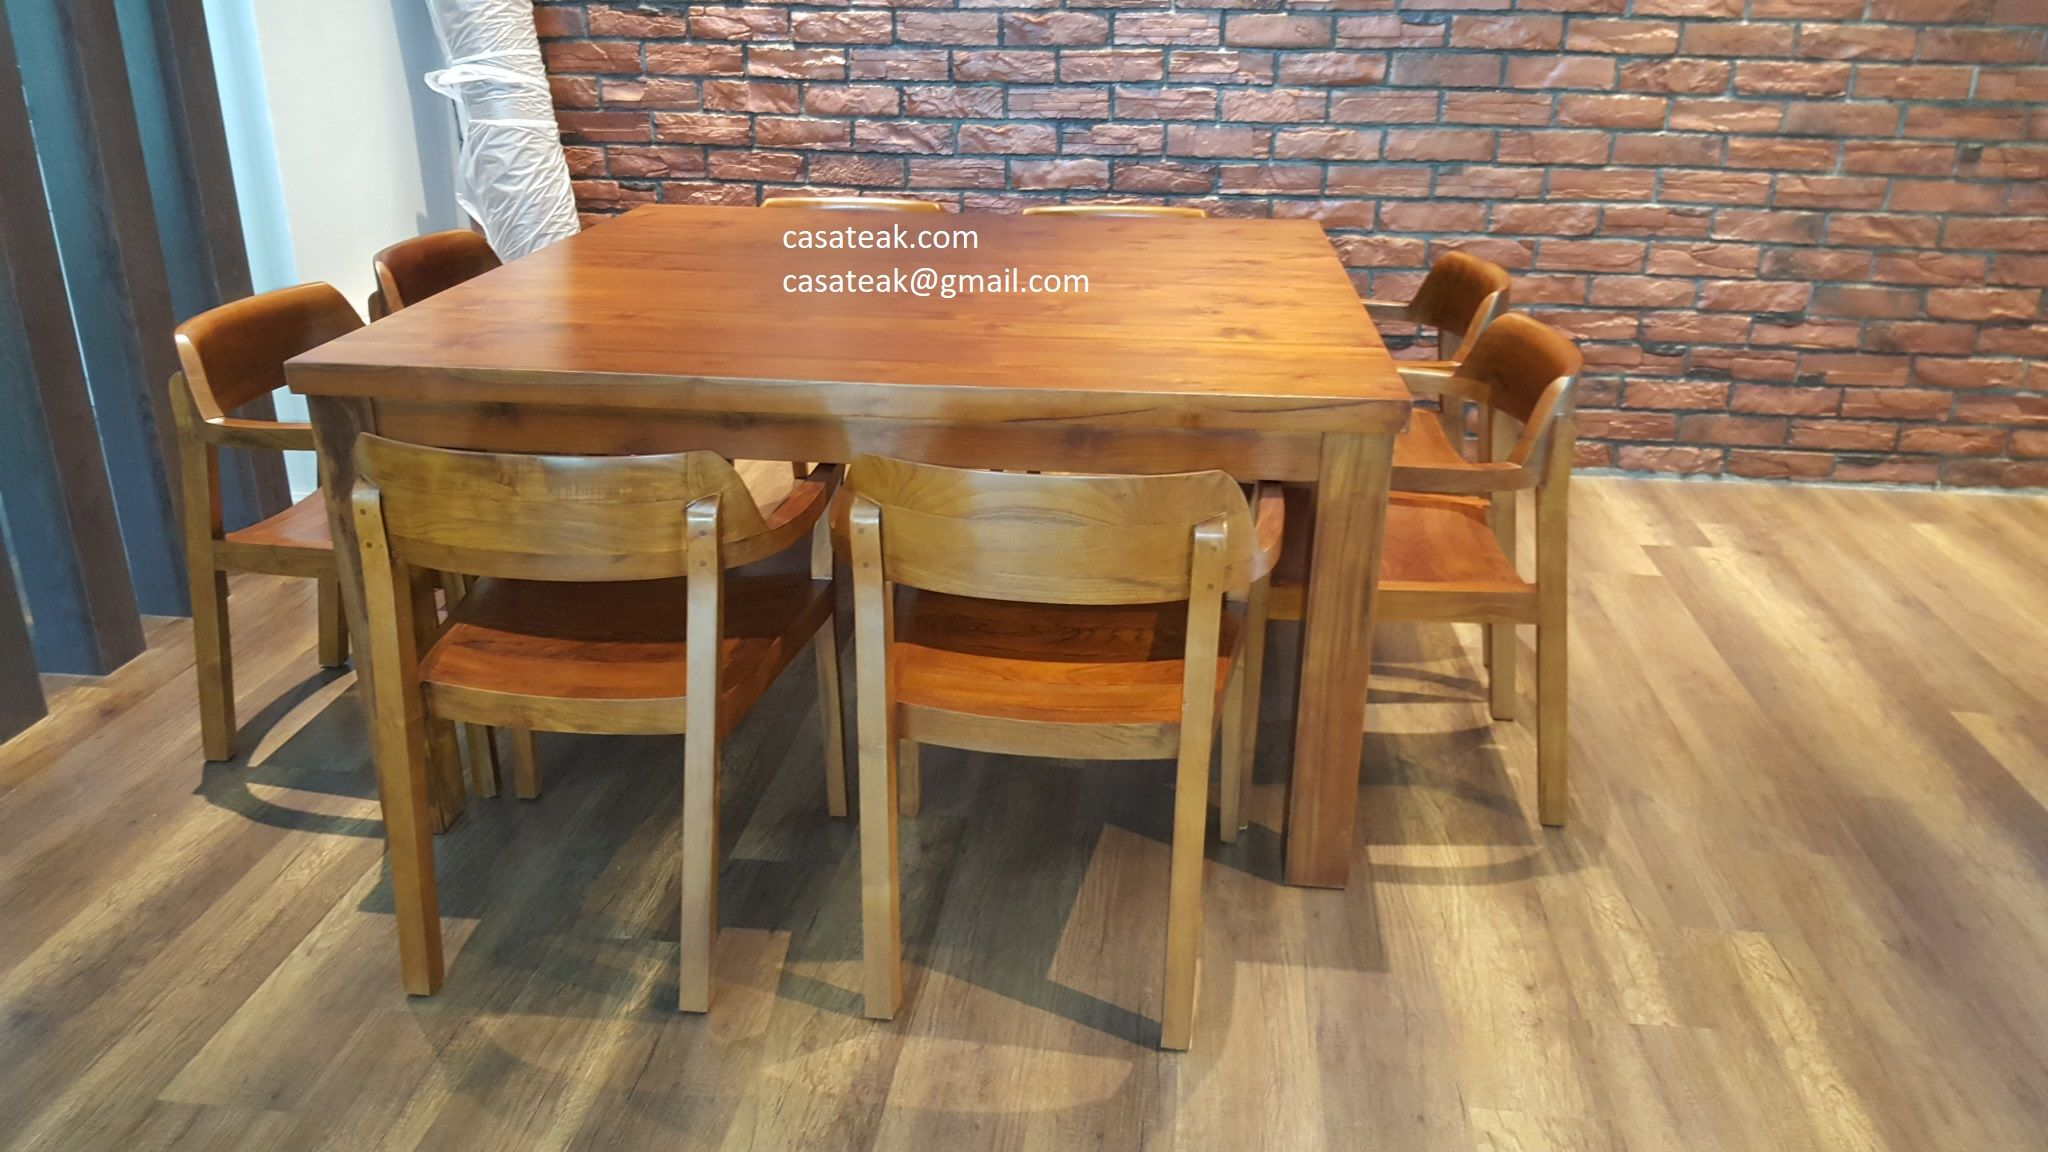 Teak Furniture Malaysia Teak Wood Furniture Shop Selangor Malaysia Wooden Dining Set Dining Table Teak Furniture